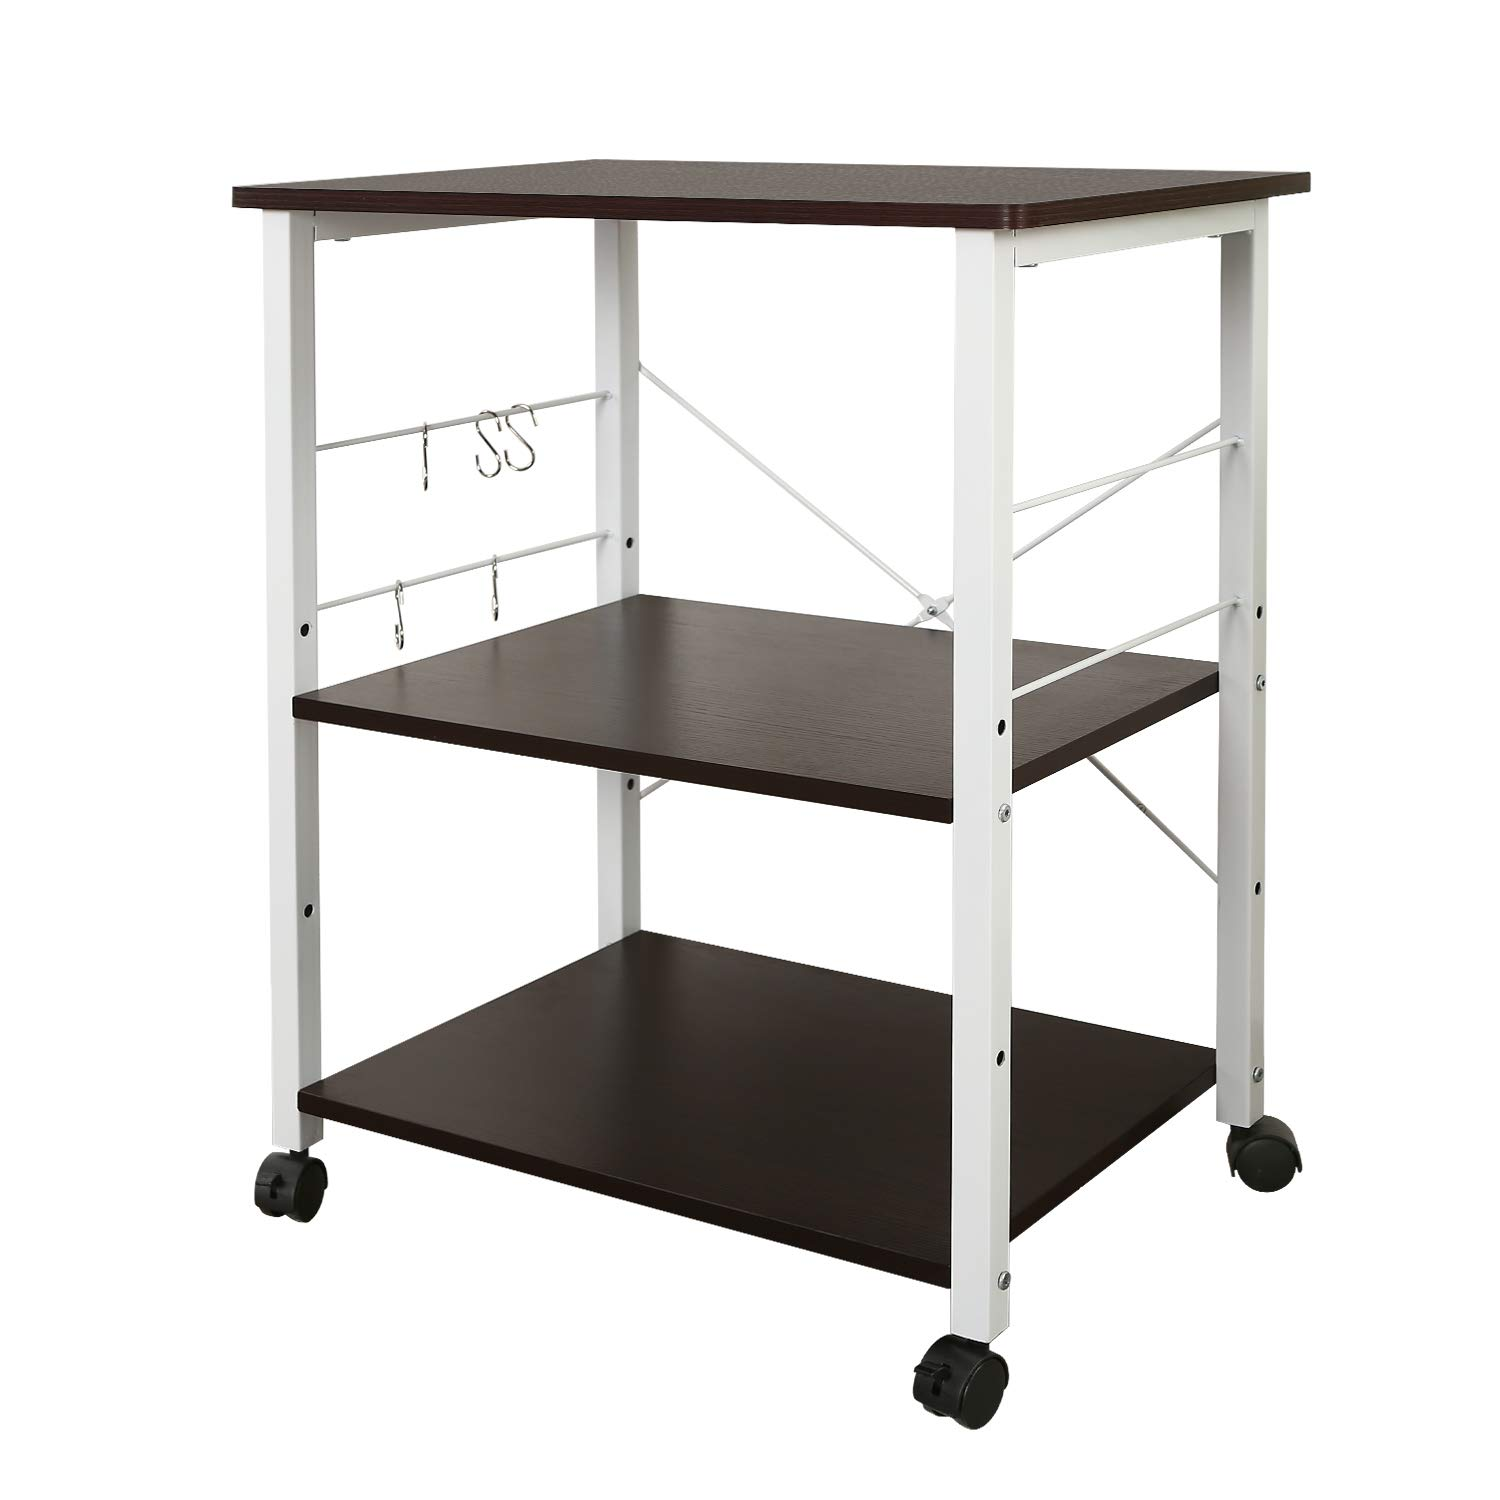 WLIVE Kitchen Baker's Rack, Utility Storage Shelf, Microwave Oven Stand, Side Table, Storage Cart Workstation Shelf with Hooks and Casters by WLIVE